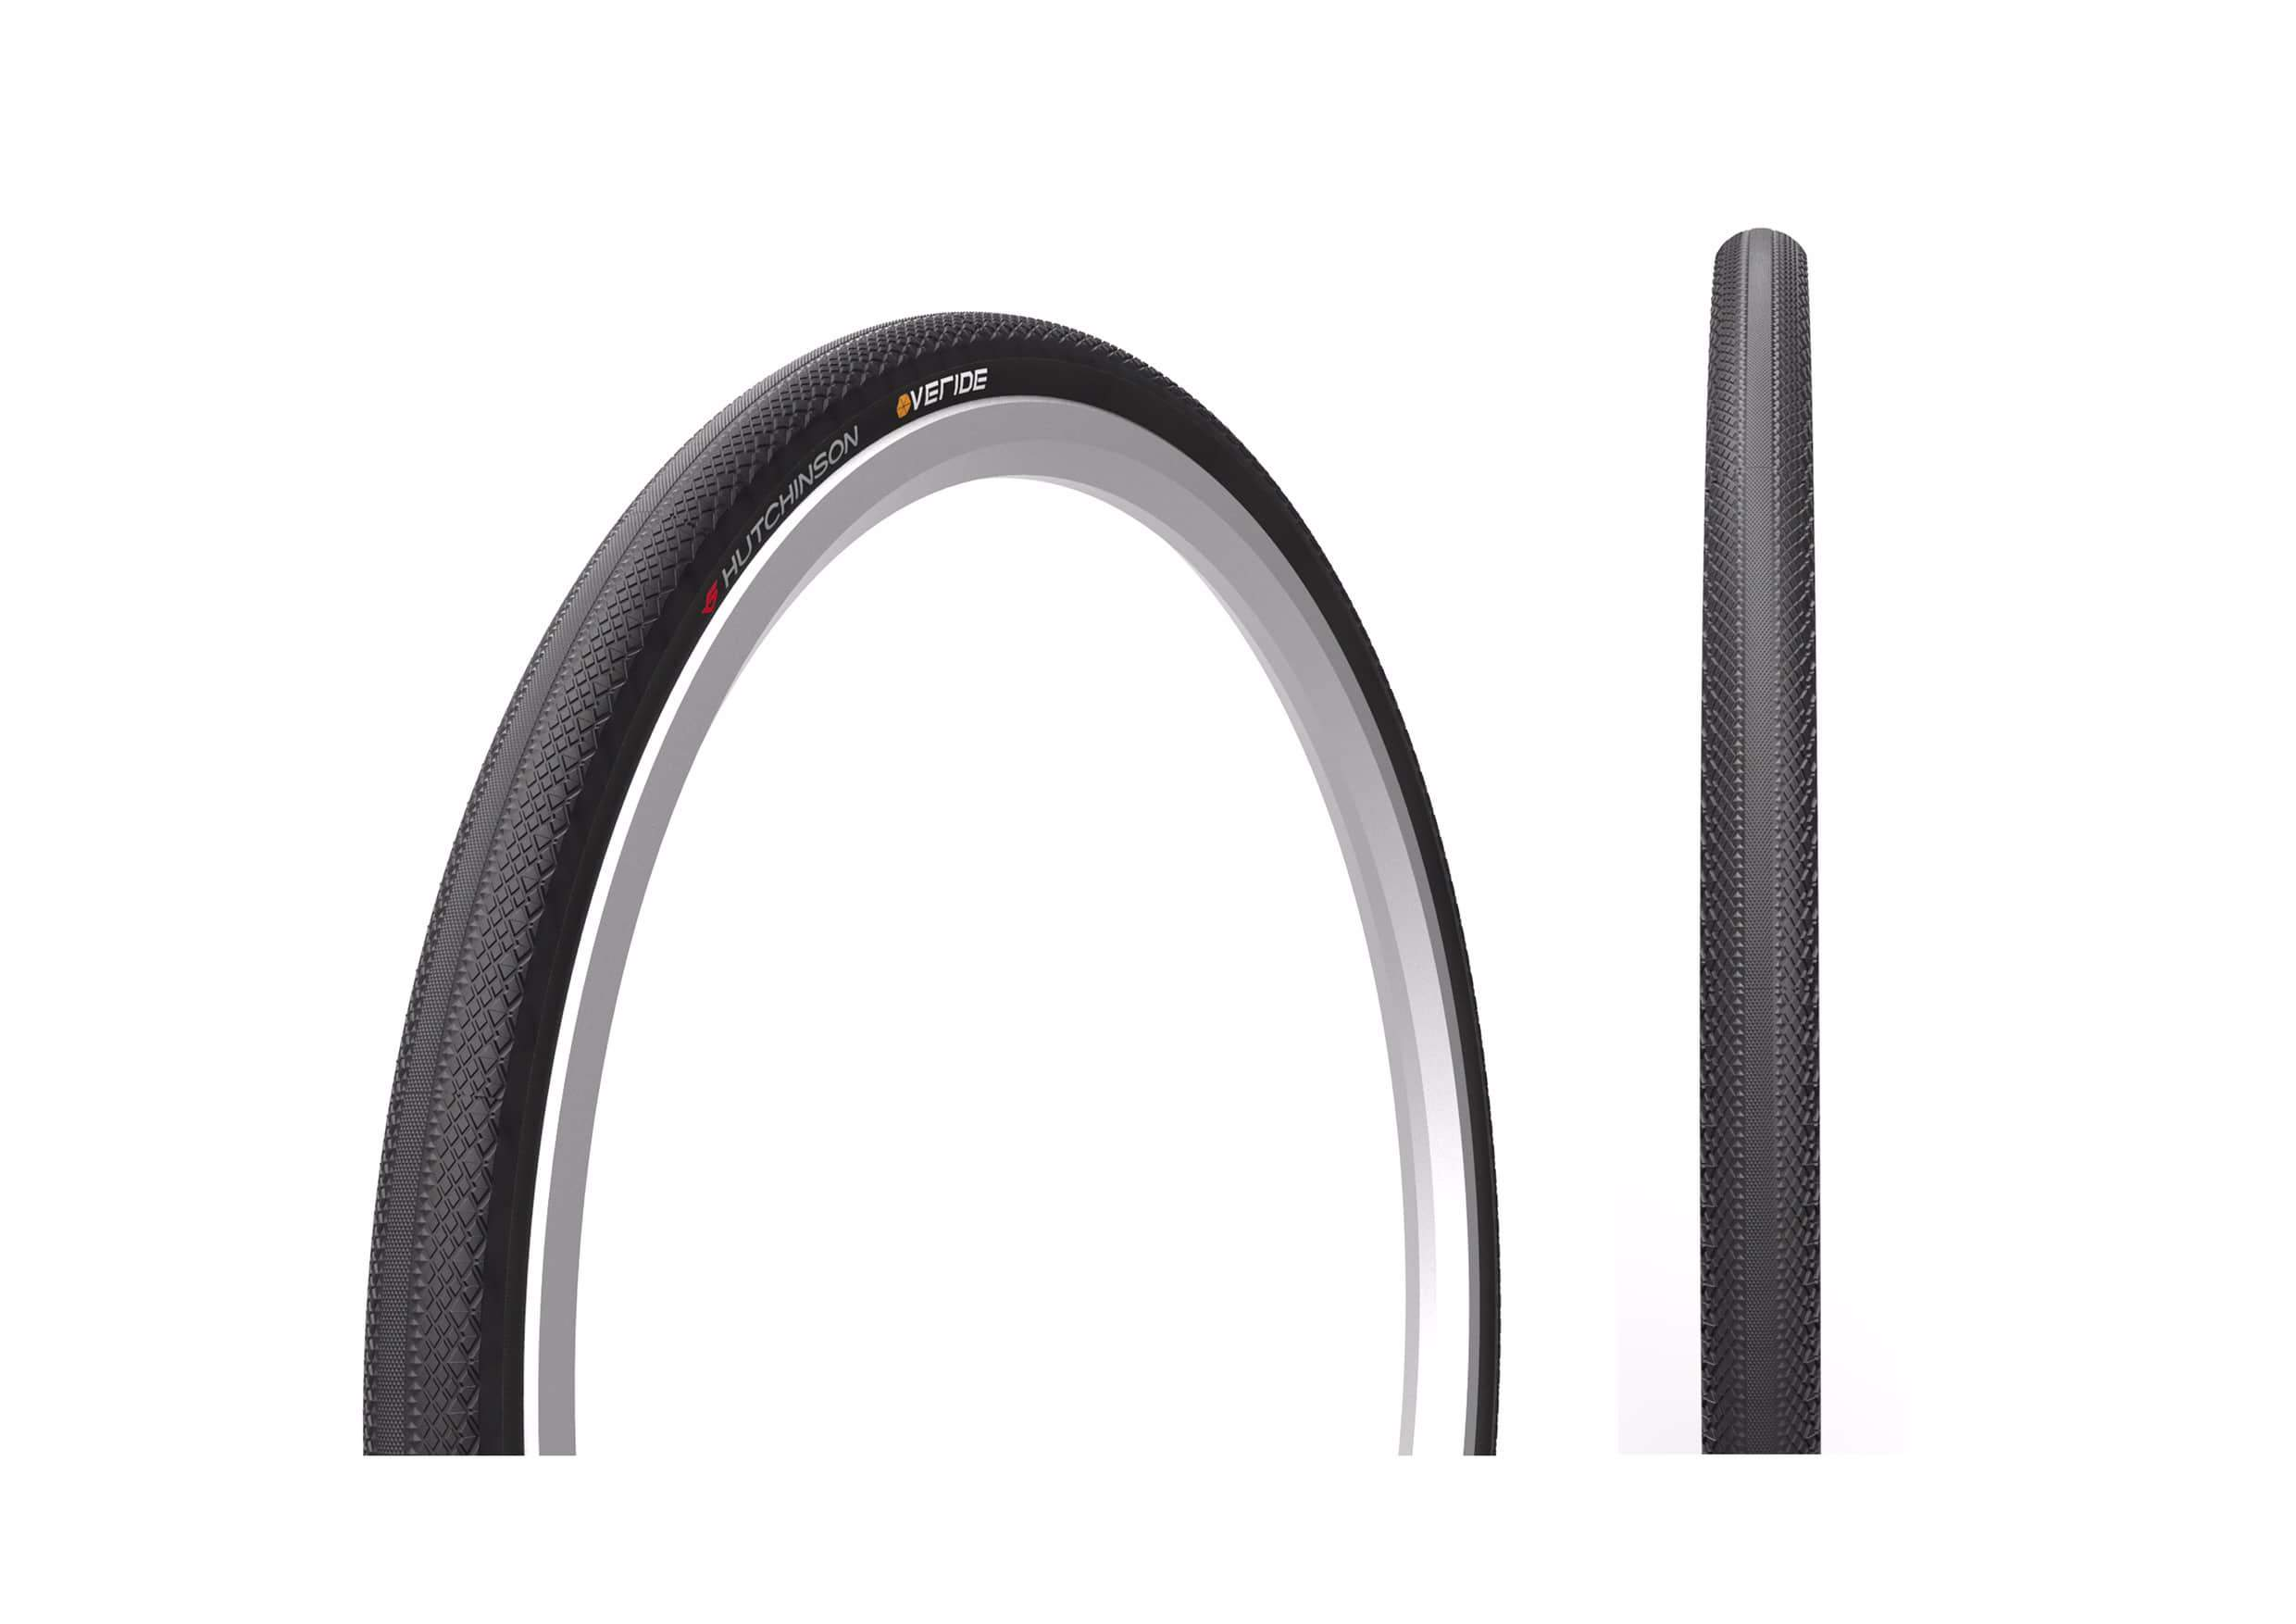 Hutchinson Overide CX Tire, 700 x 35c